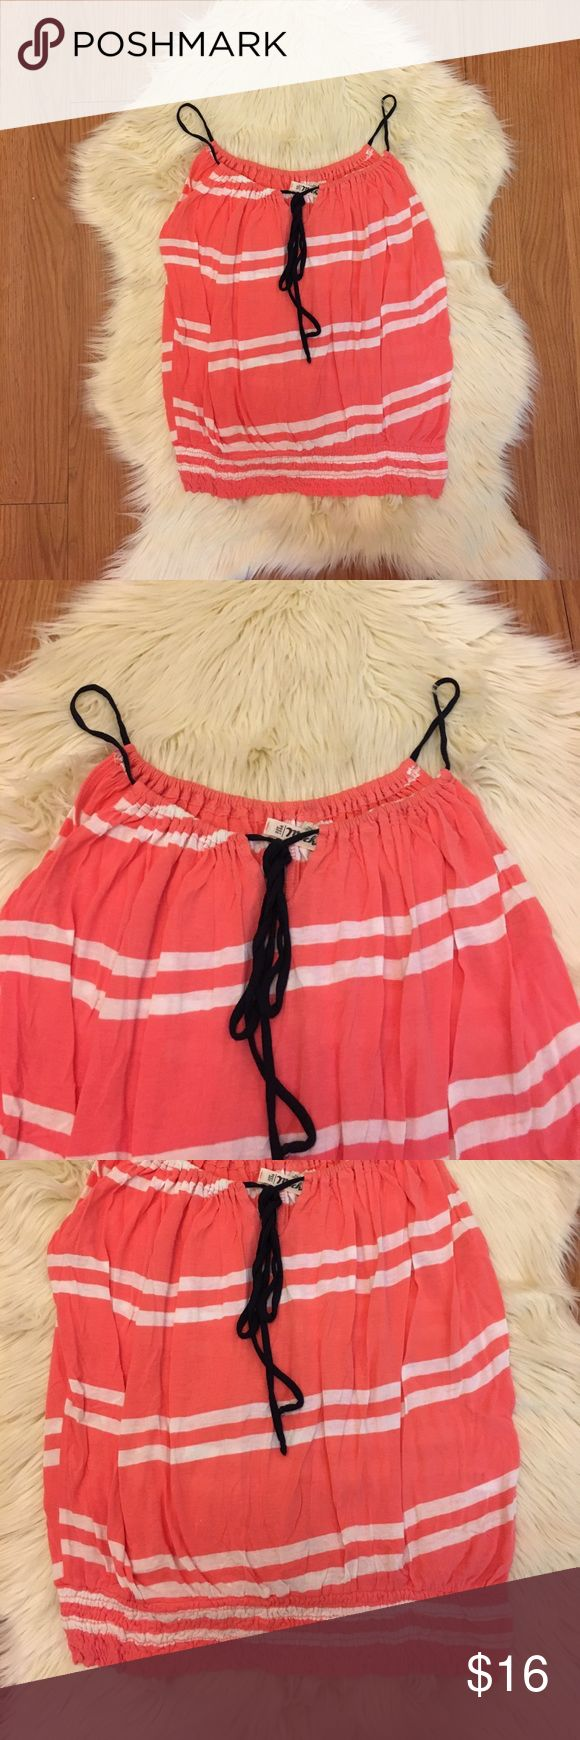 Michael Stars Striped Cami Top W/ Keyhole Michael Stars. One Size, but fits closer to Small. Cami style top. With keyhole detail. Coral and white stripes. 100% Rayon. Have any questions ask away! Bundle 3 items or more and save 20% off! Offers Welcomed! No Trades ⛔️ Tops Camisoles